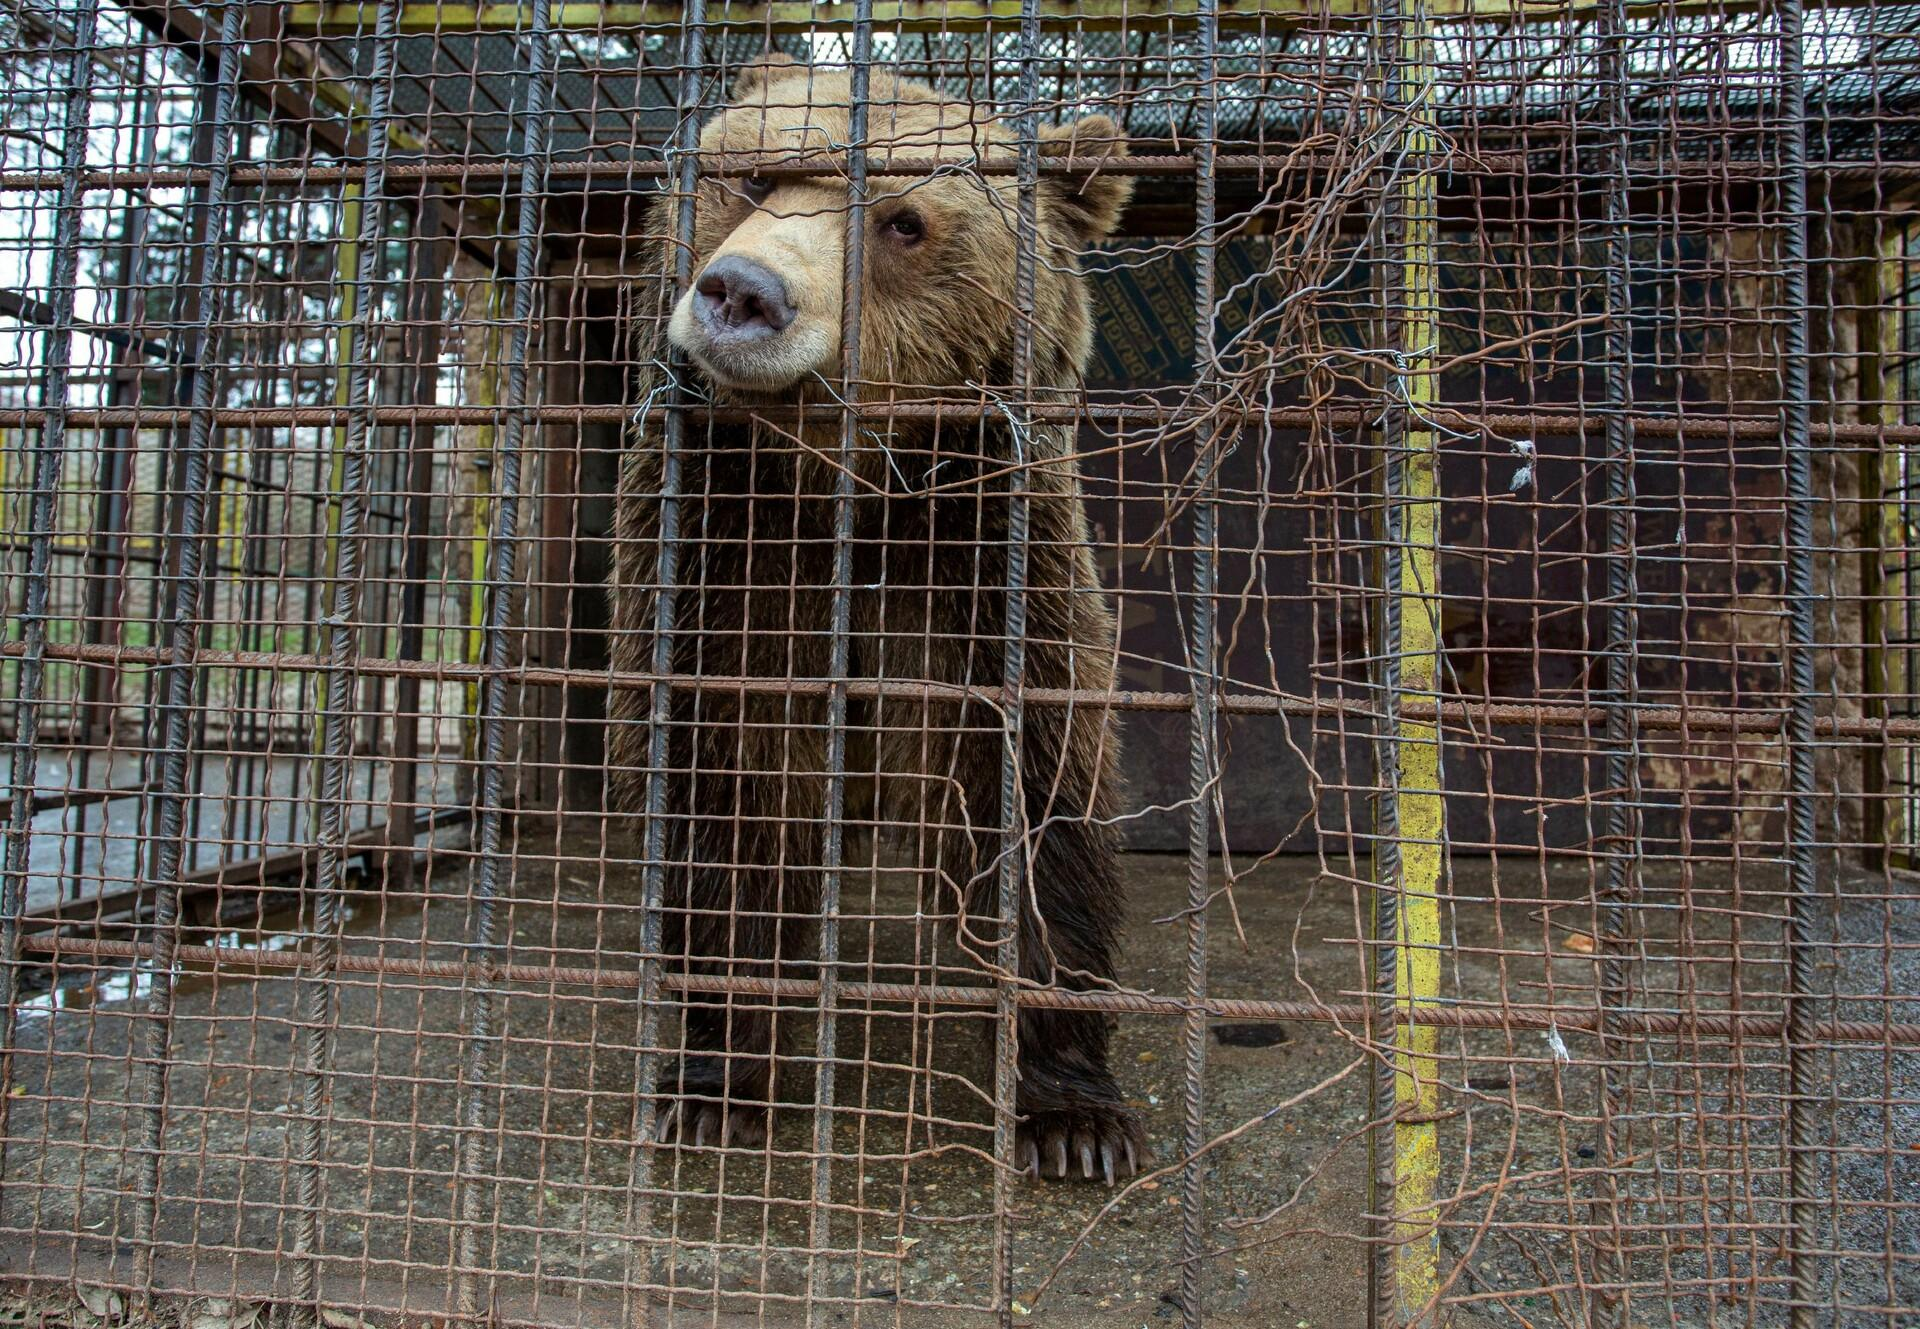 Bear Teddy in a tiny cage